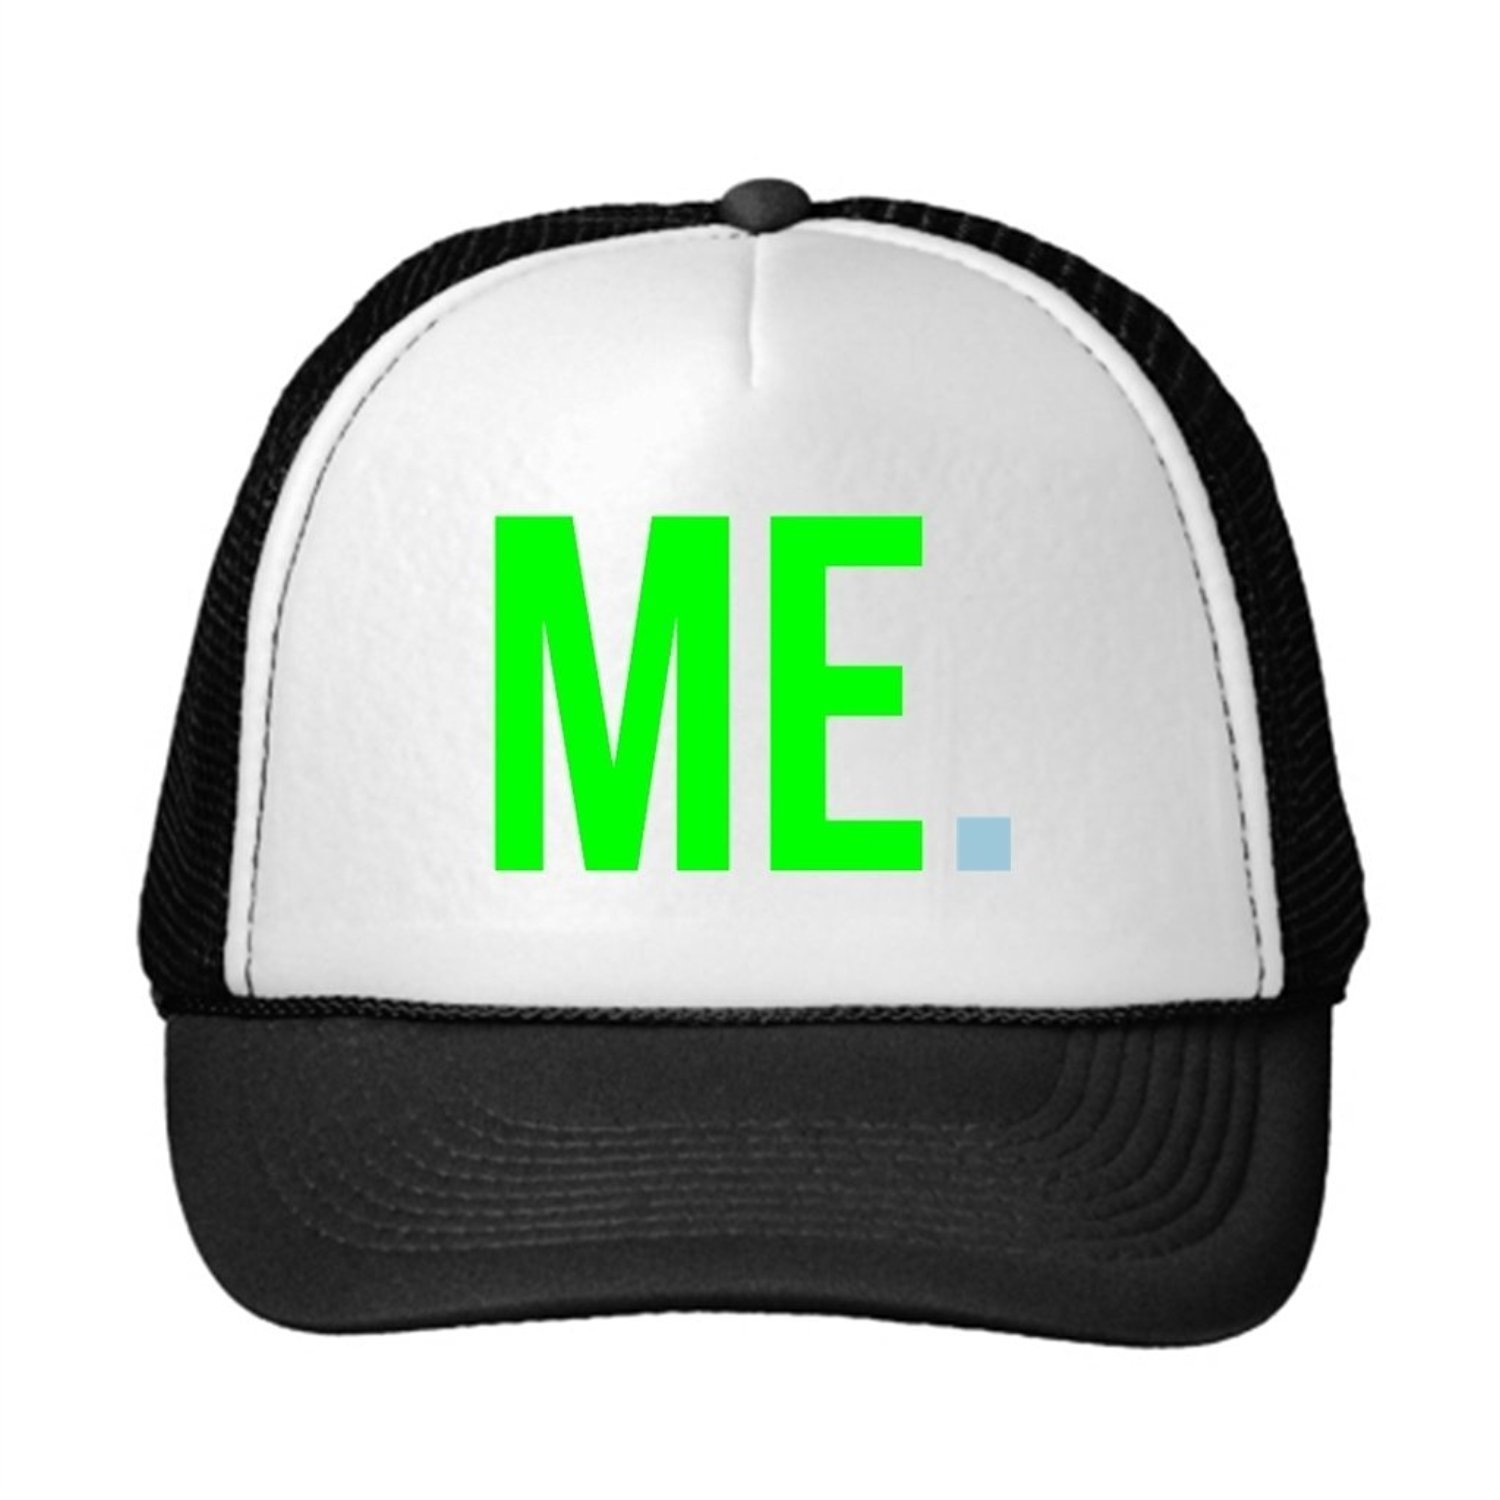 Cheap Neon Trucker Hats Wholesale, find Neon Trucker Hats